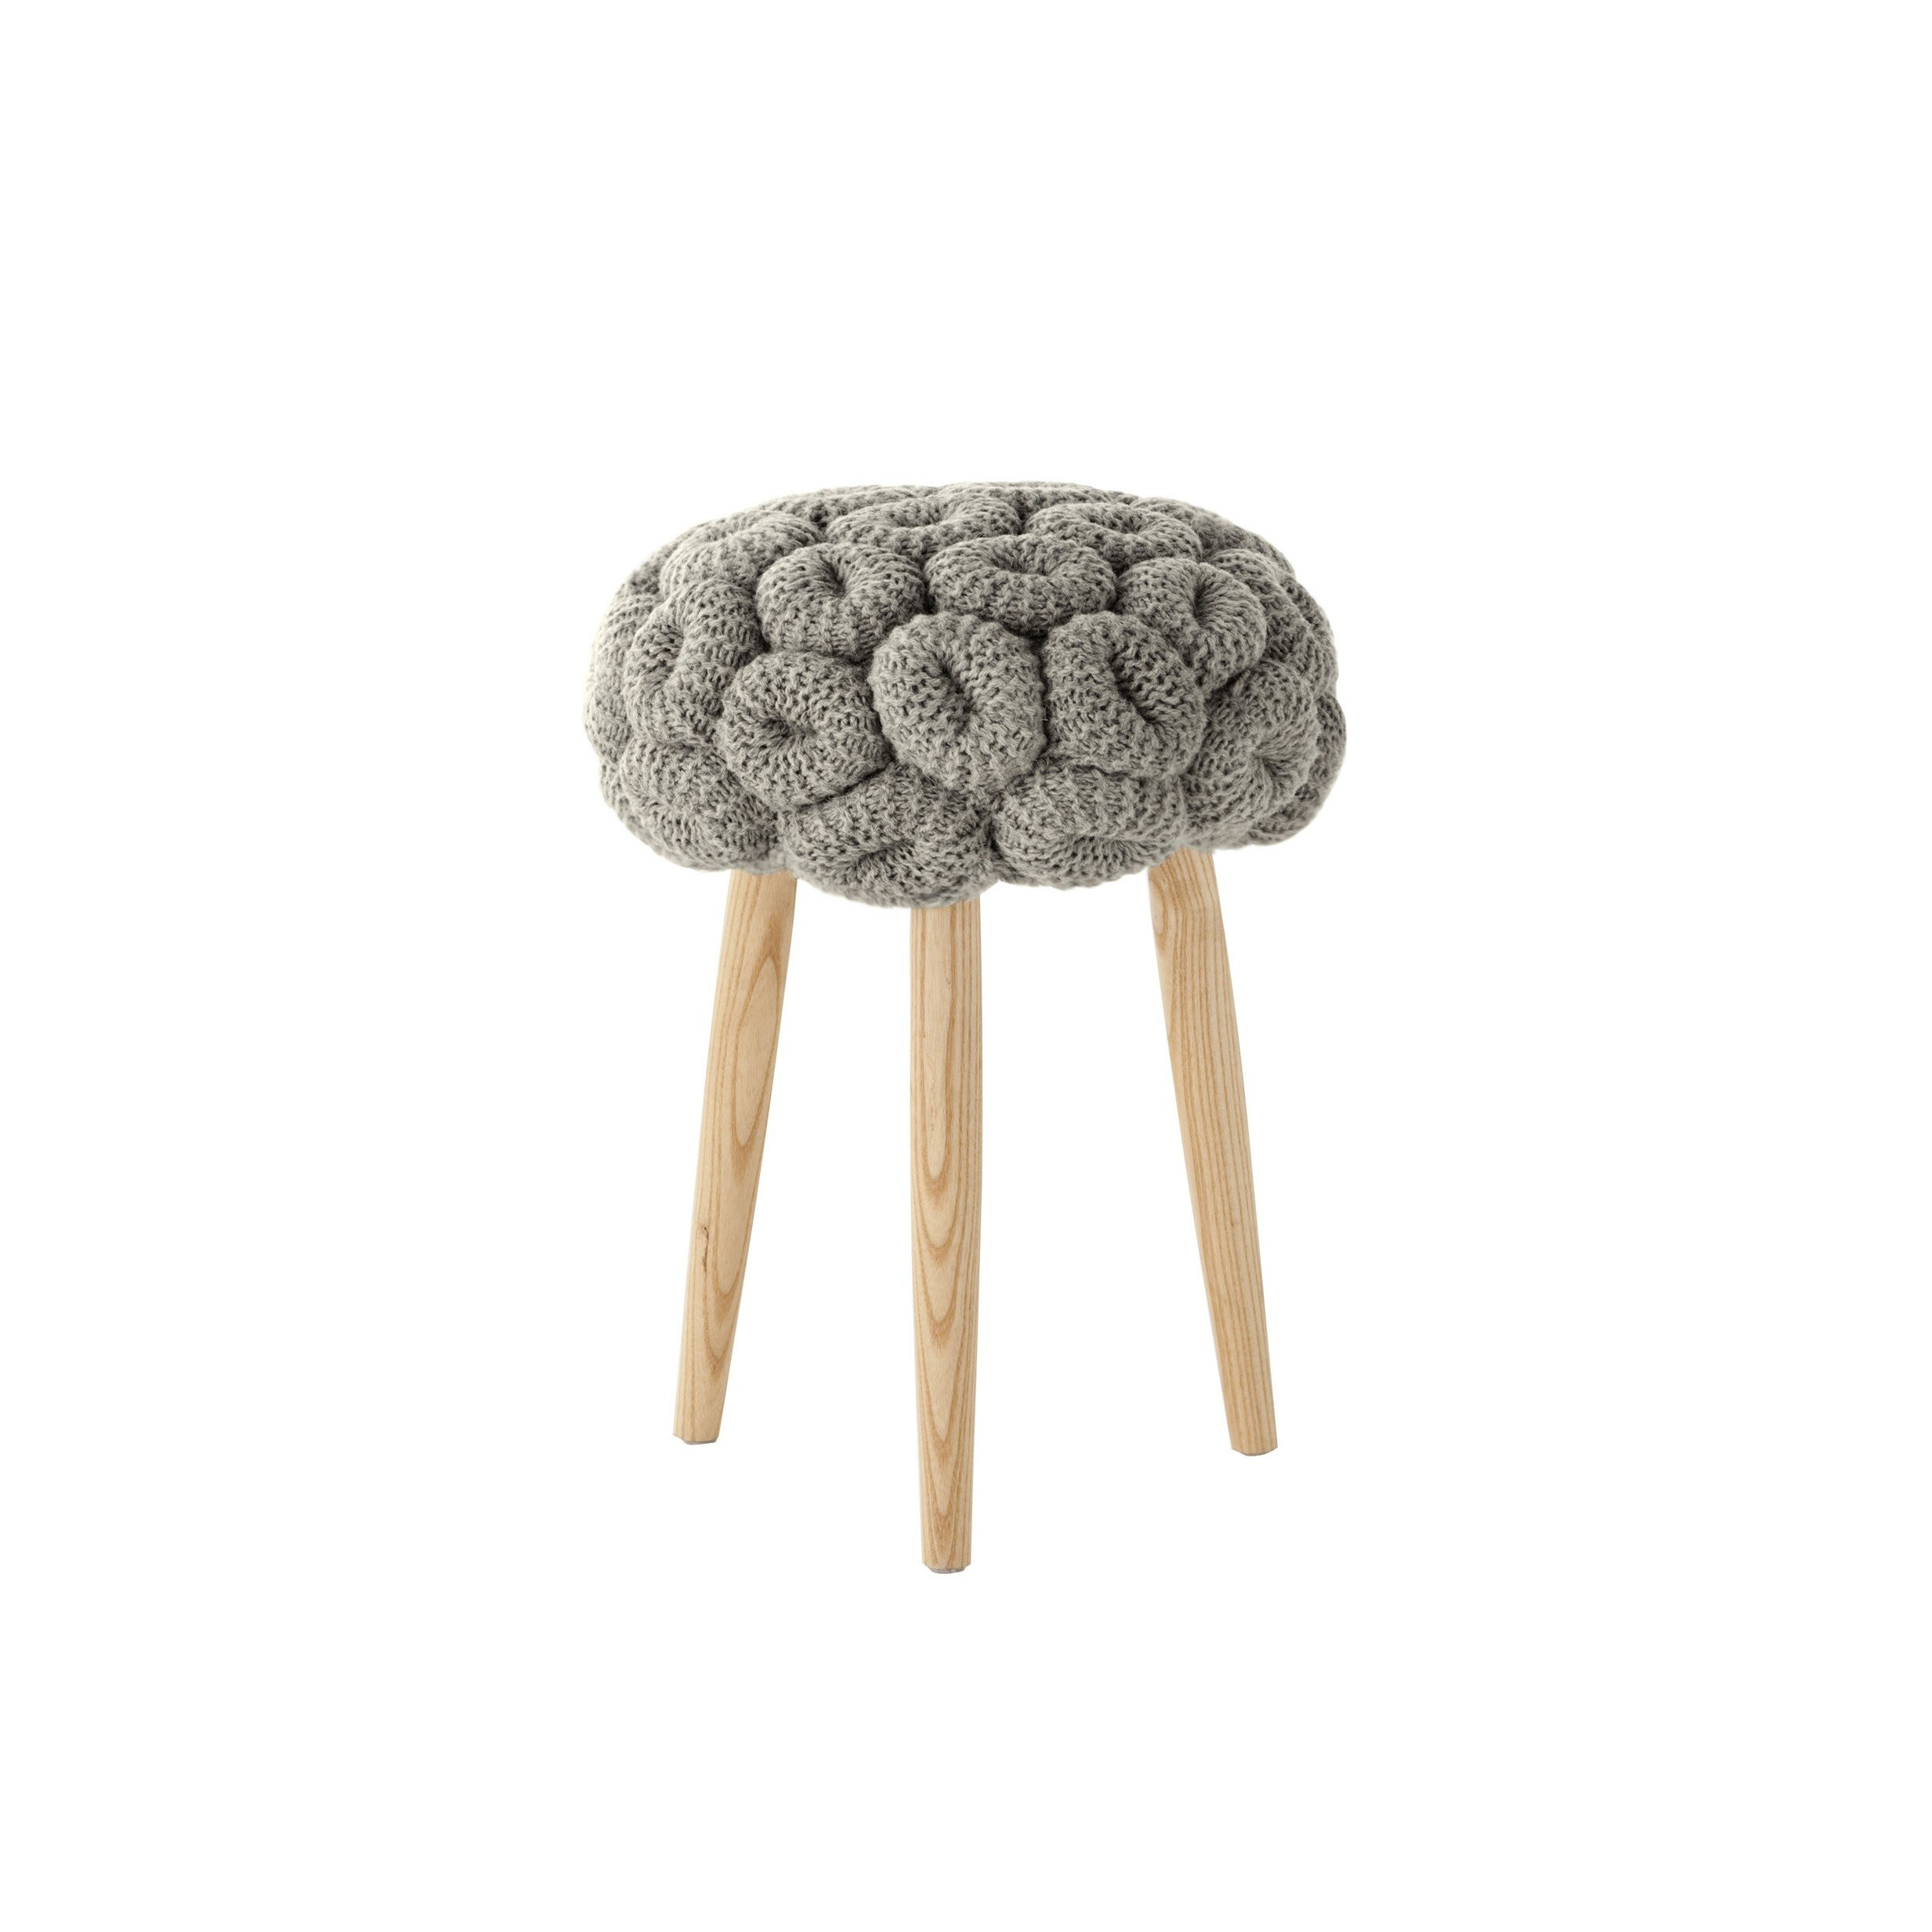 Knitted Grey Stool - Craft, with a touch of magic. Inspired by real stitches and woven yarns, these knitted stools magnify the concept and make it into a completely new item: a comfy seat. This has been hand knitted and due to the handmade nature of the GAN product, slight variations in size, colour, finish are normal.   | Matter of Stuff